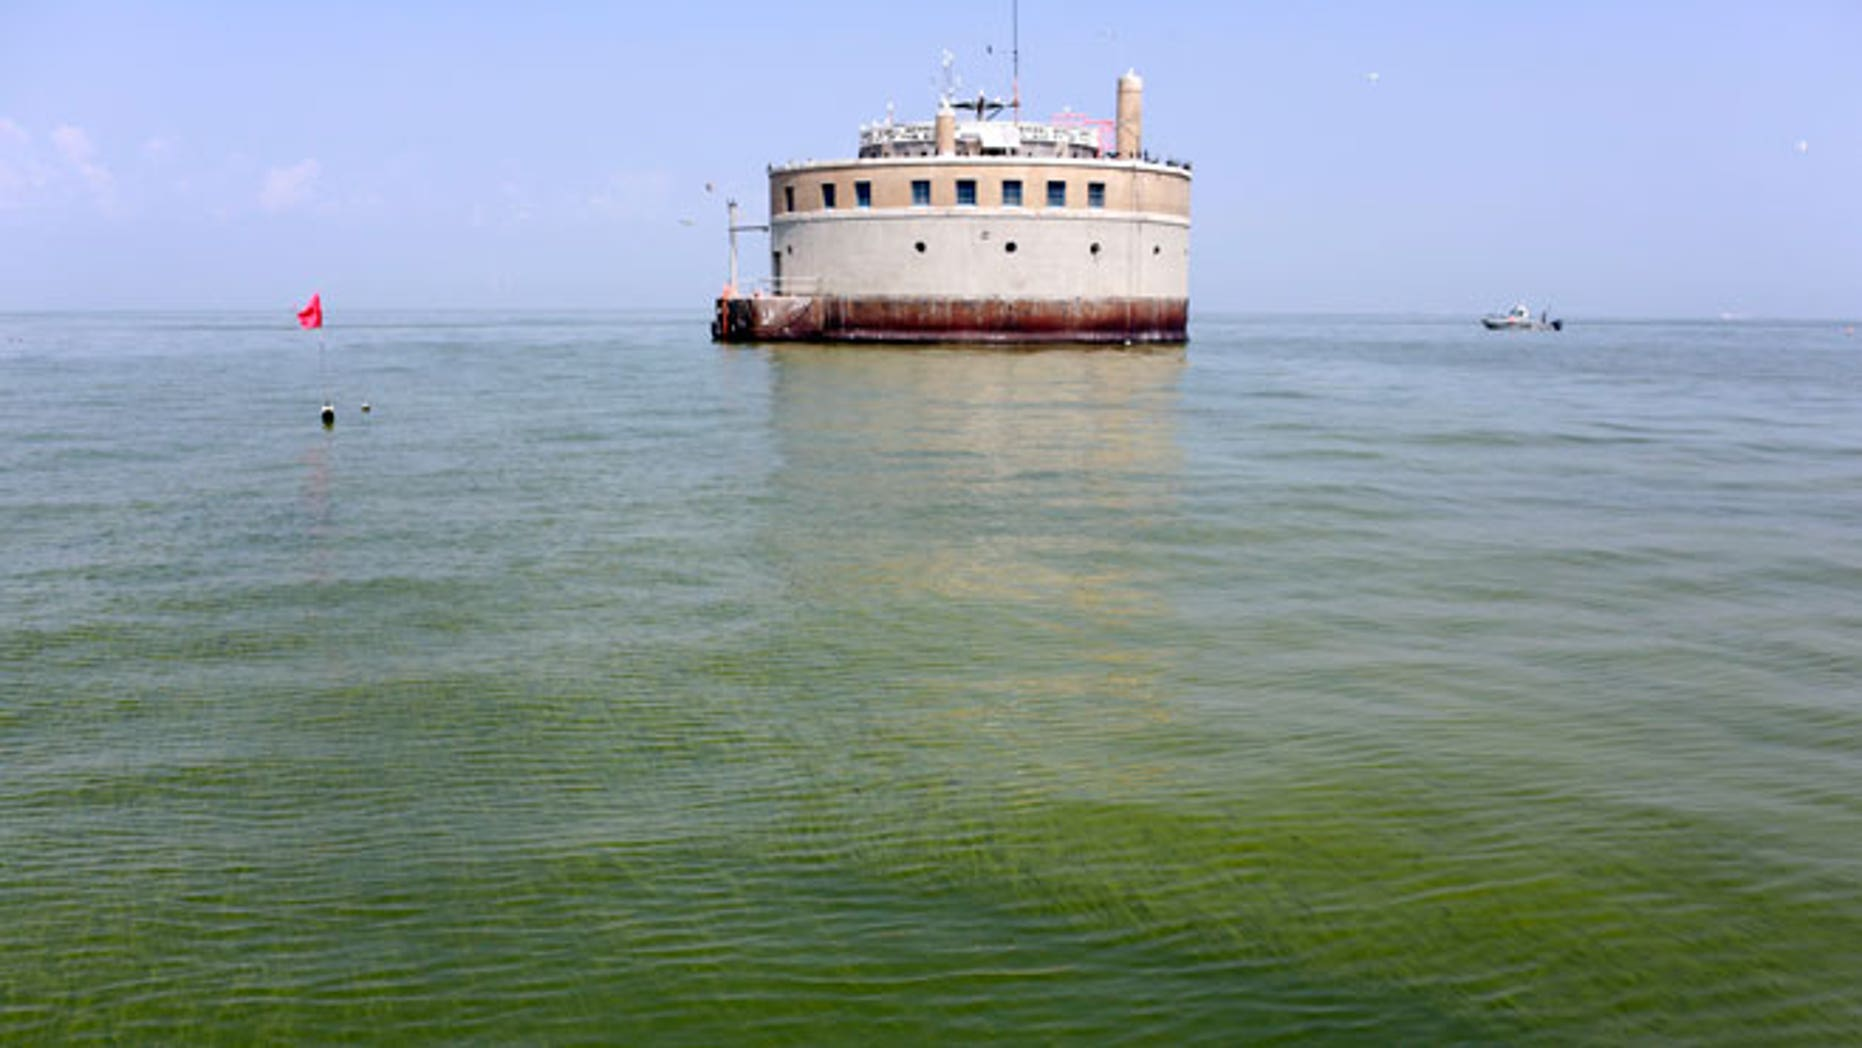 In this Aug. 3, 2014, file photo, the City of Toledo water intake crib is surrounded by algae in Lake Erie, about 2.5 miles off the shore of Curtice, Ohio. Toledo has detected the first signs in Lake Erie of the dangerous toxin that resulted in a water crisis last year that left 400,000 people in northwestern Ohio and southeastern Michigan without safe tap water for two days announced Monday, July 27, 2015.